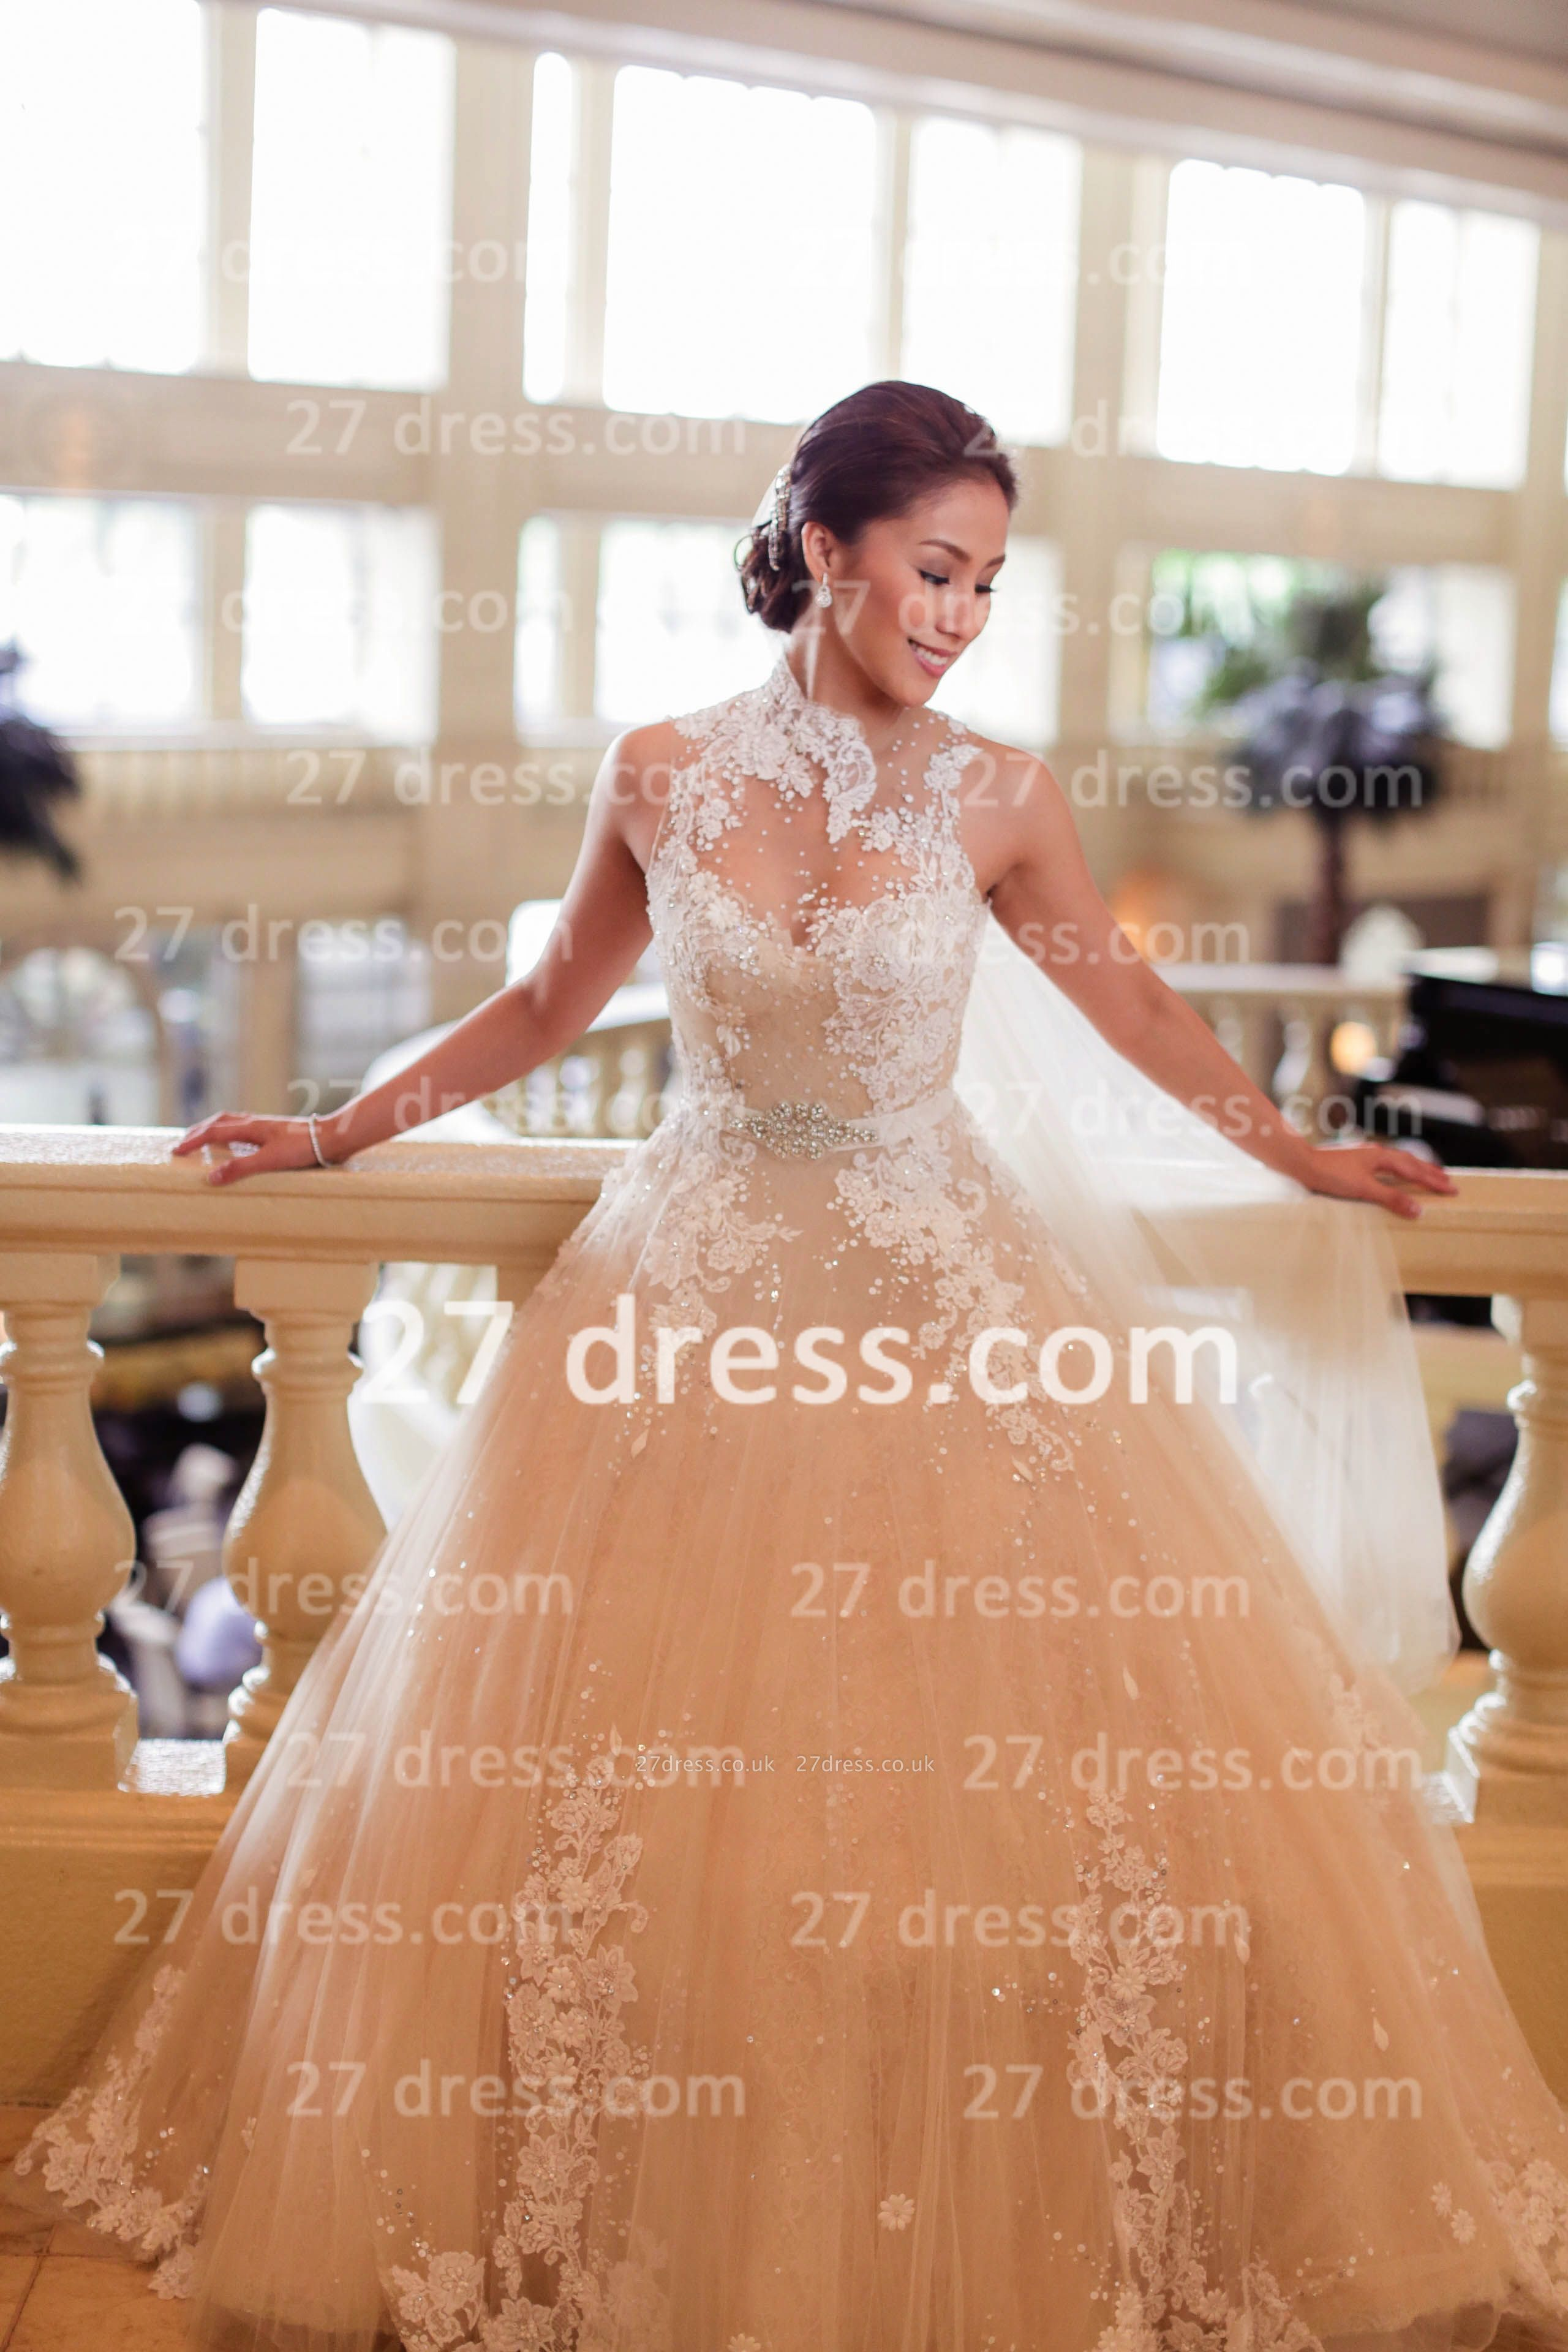 Train A-line Wedding Dresses UK Bridal Gowns with Sheer Cheap Tulle Buttons Sleeveless Applique Beaded Court